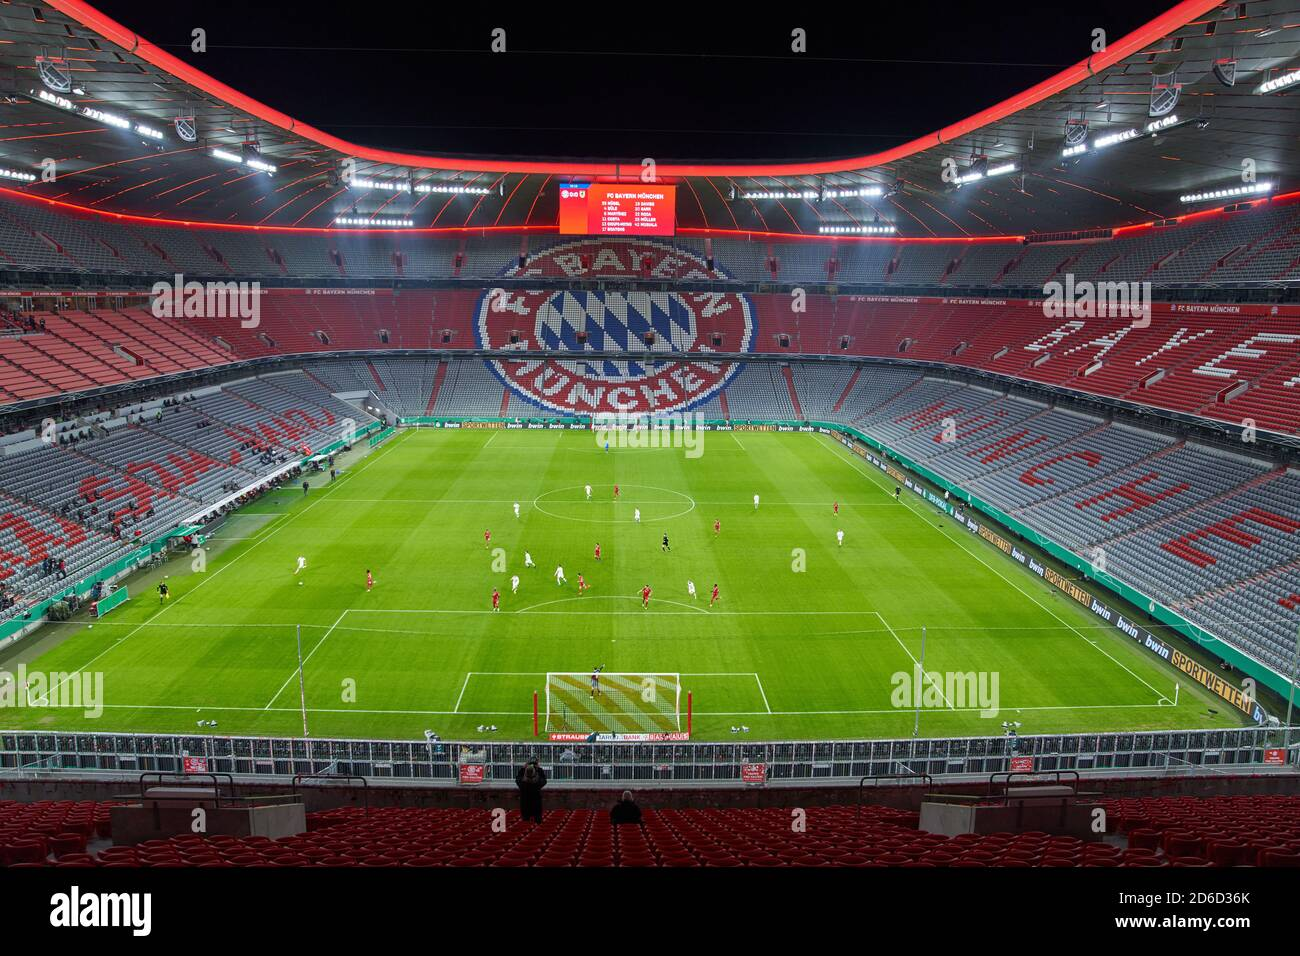 Allianz Arena inside with tribunes and pitch FC BAYERN MUENCHEN - 1.FC DUEREN 3-0 DFB-Pokal erste Runde, German Football Trophy , Munich, October 15, 2020  Season 2020/2021,  Soccer, München, Munich © Peter Schatz / Alamy Live News Stock Photo